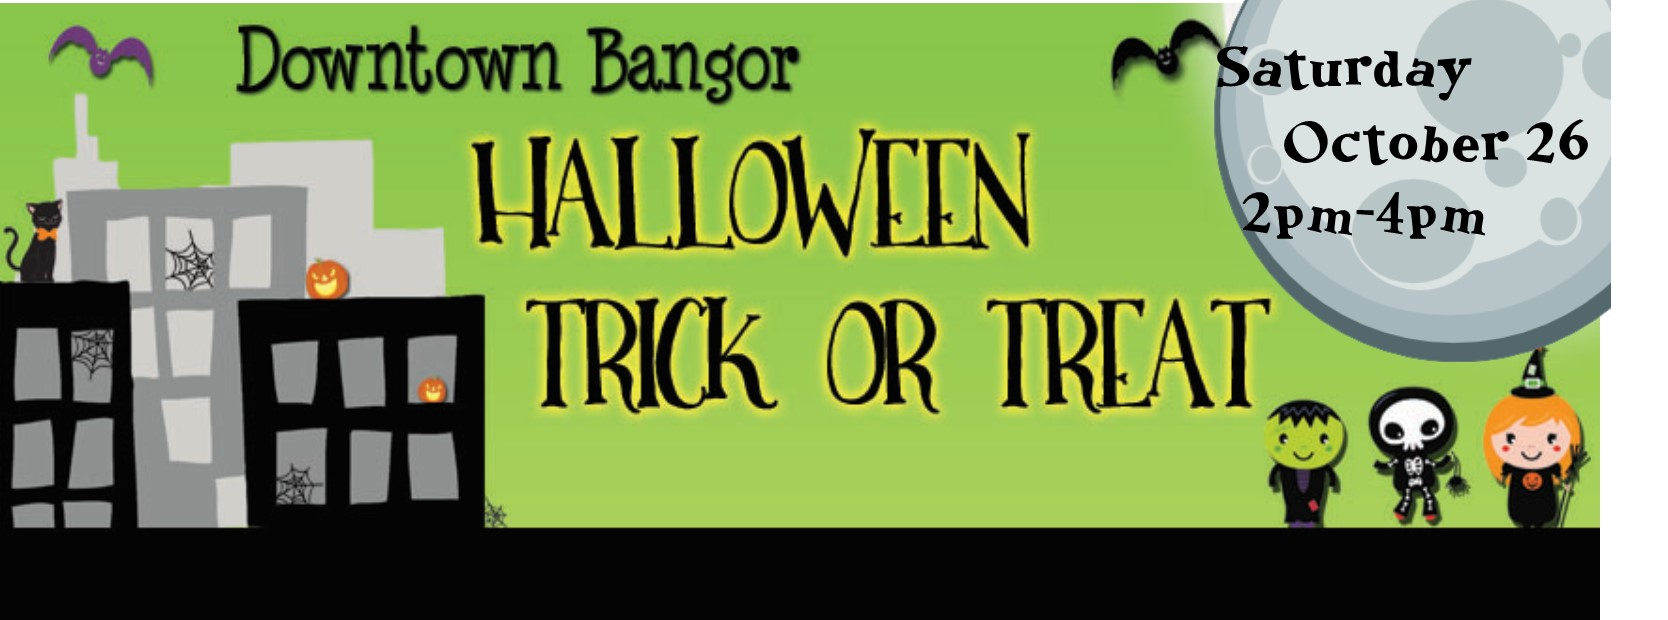 Halloween Trick Or Treat @ Downtown Bangor